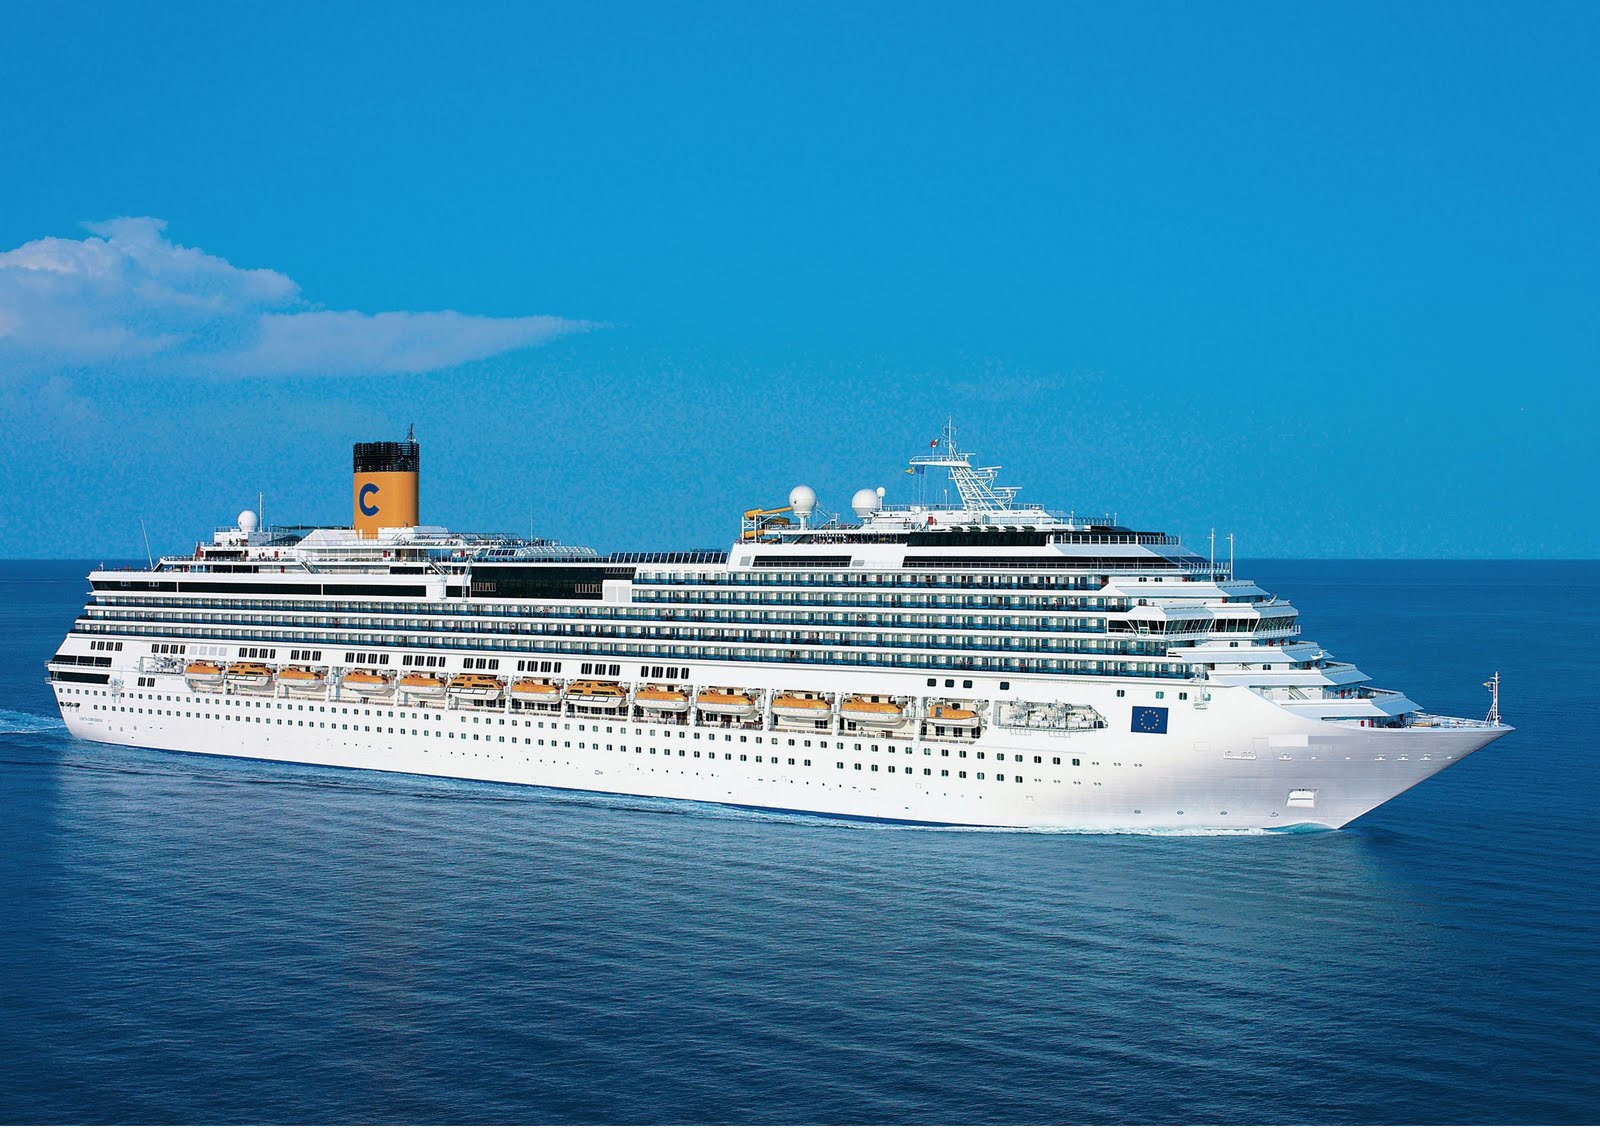 Costa Favolosa - luxury cruise ships